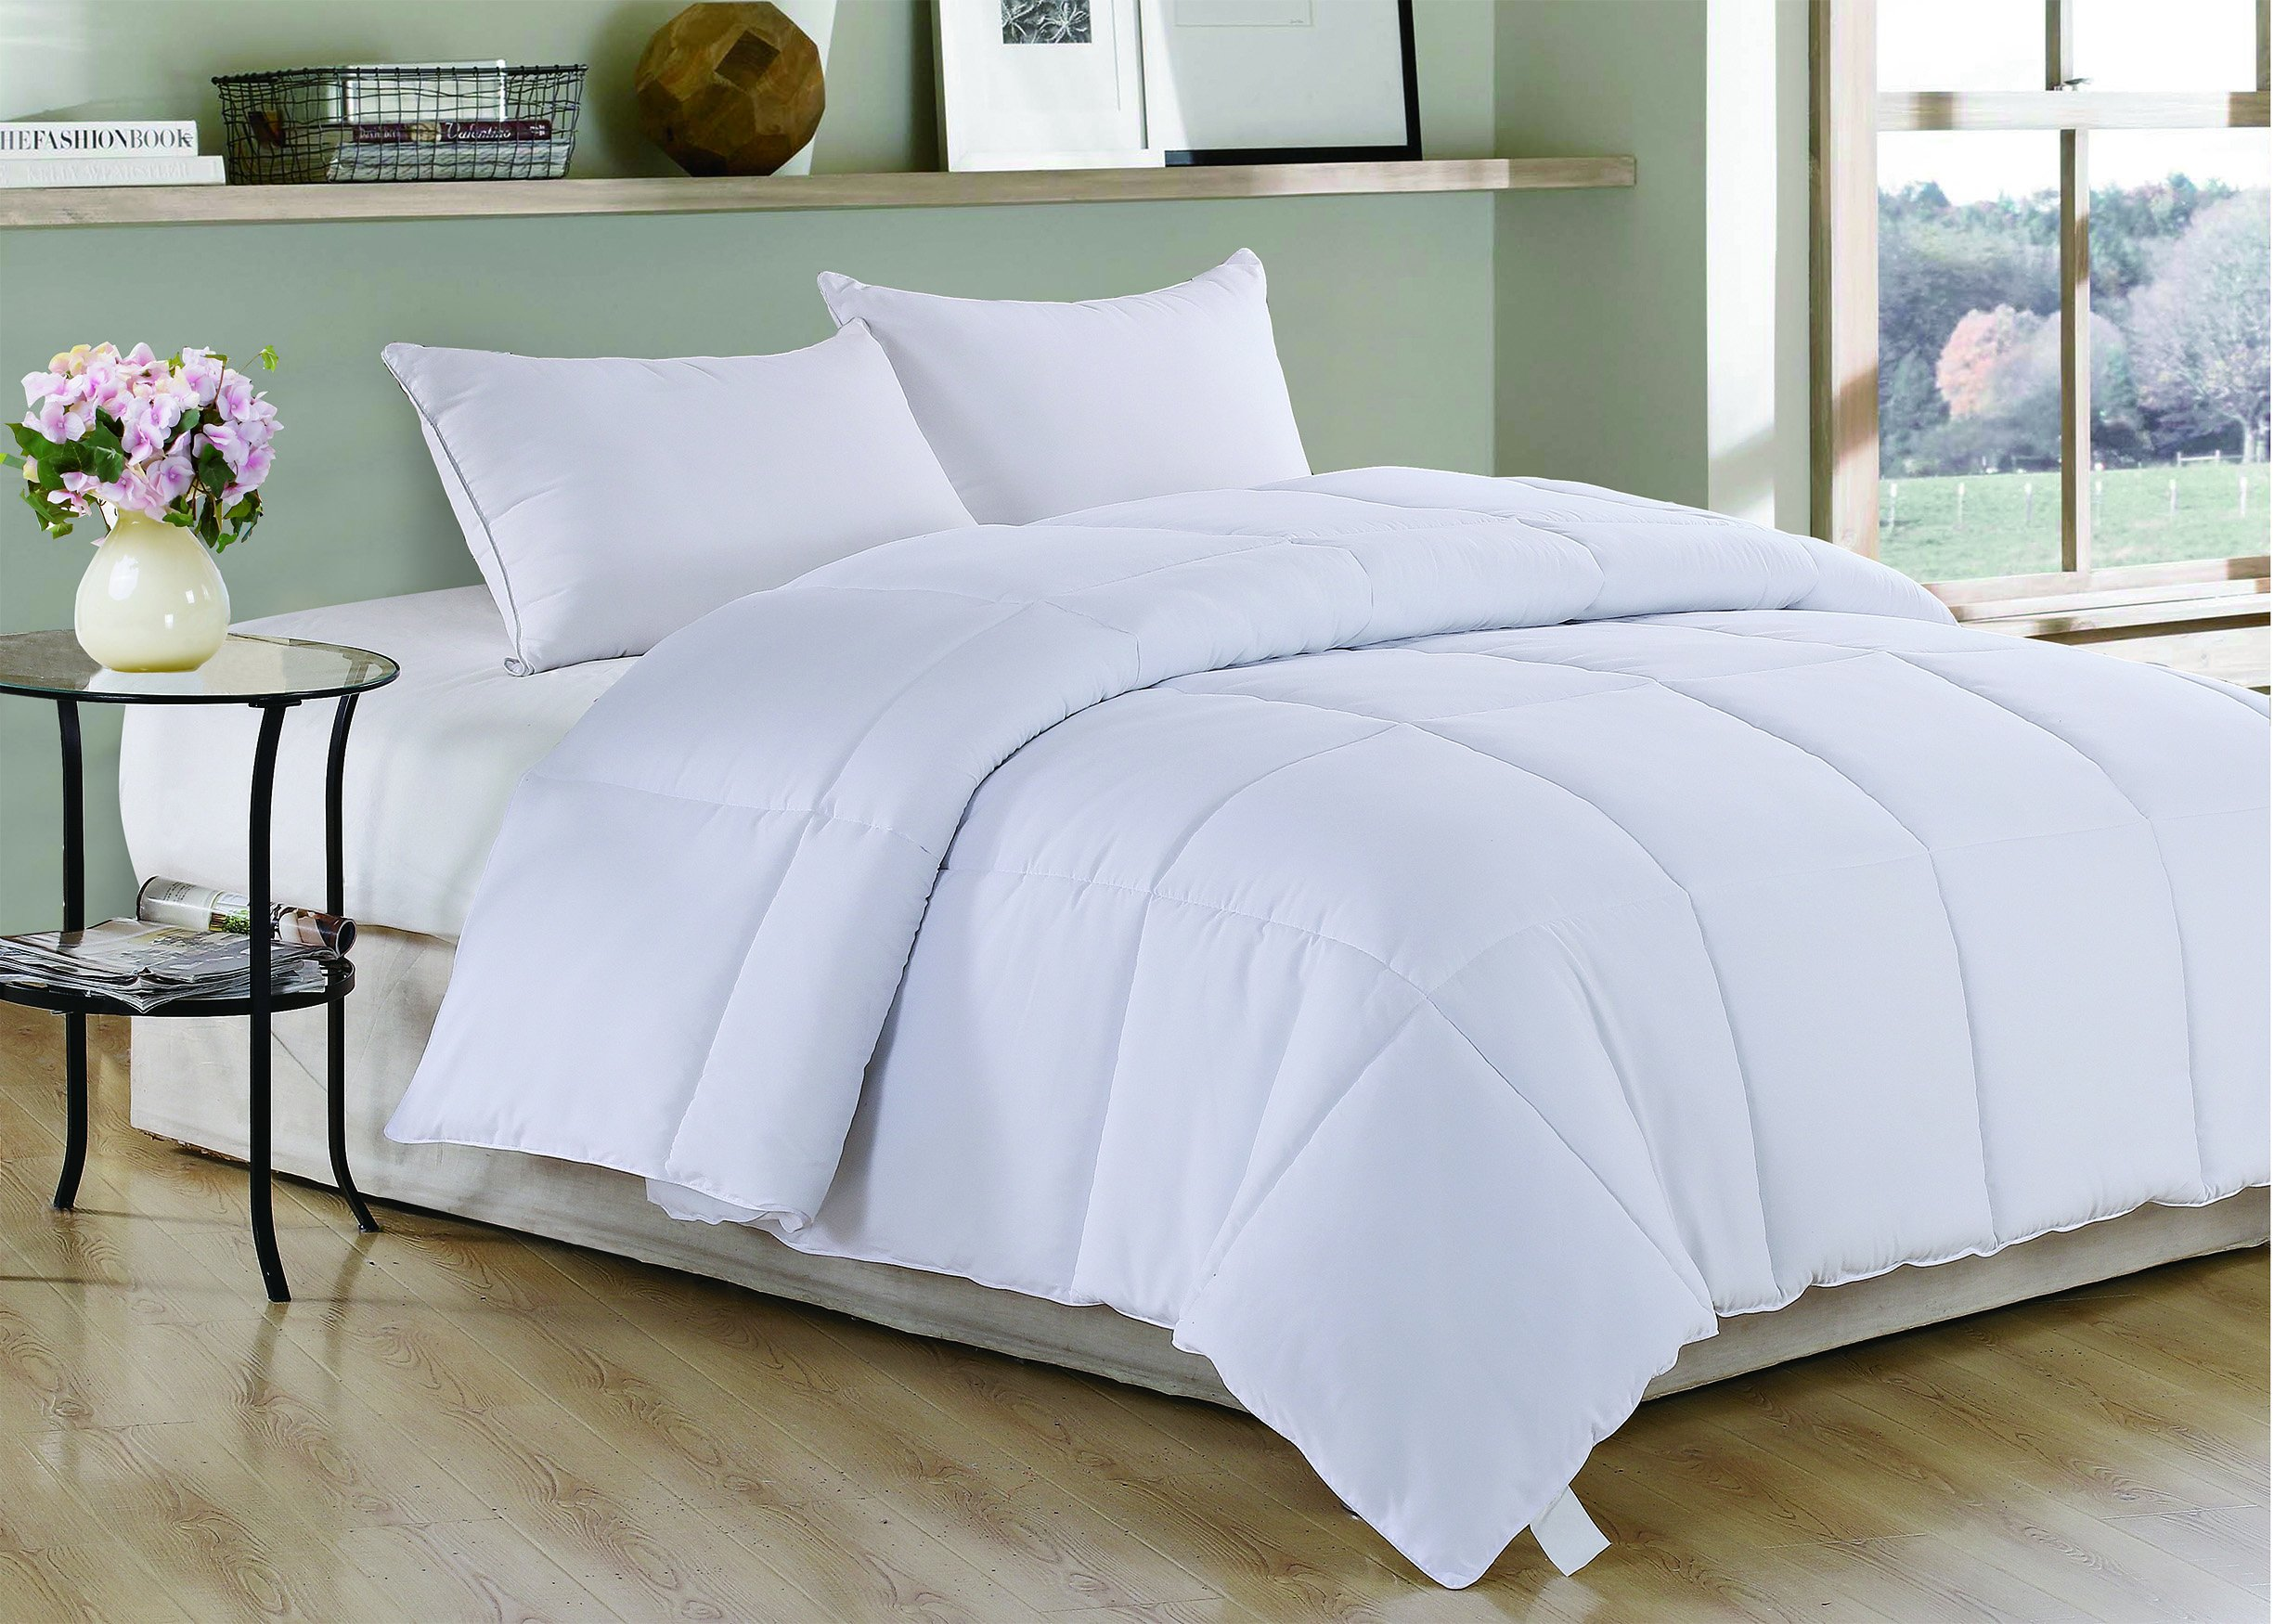 comforter down king amazon sets queen white bed twin size bedspreads